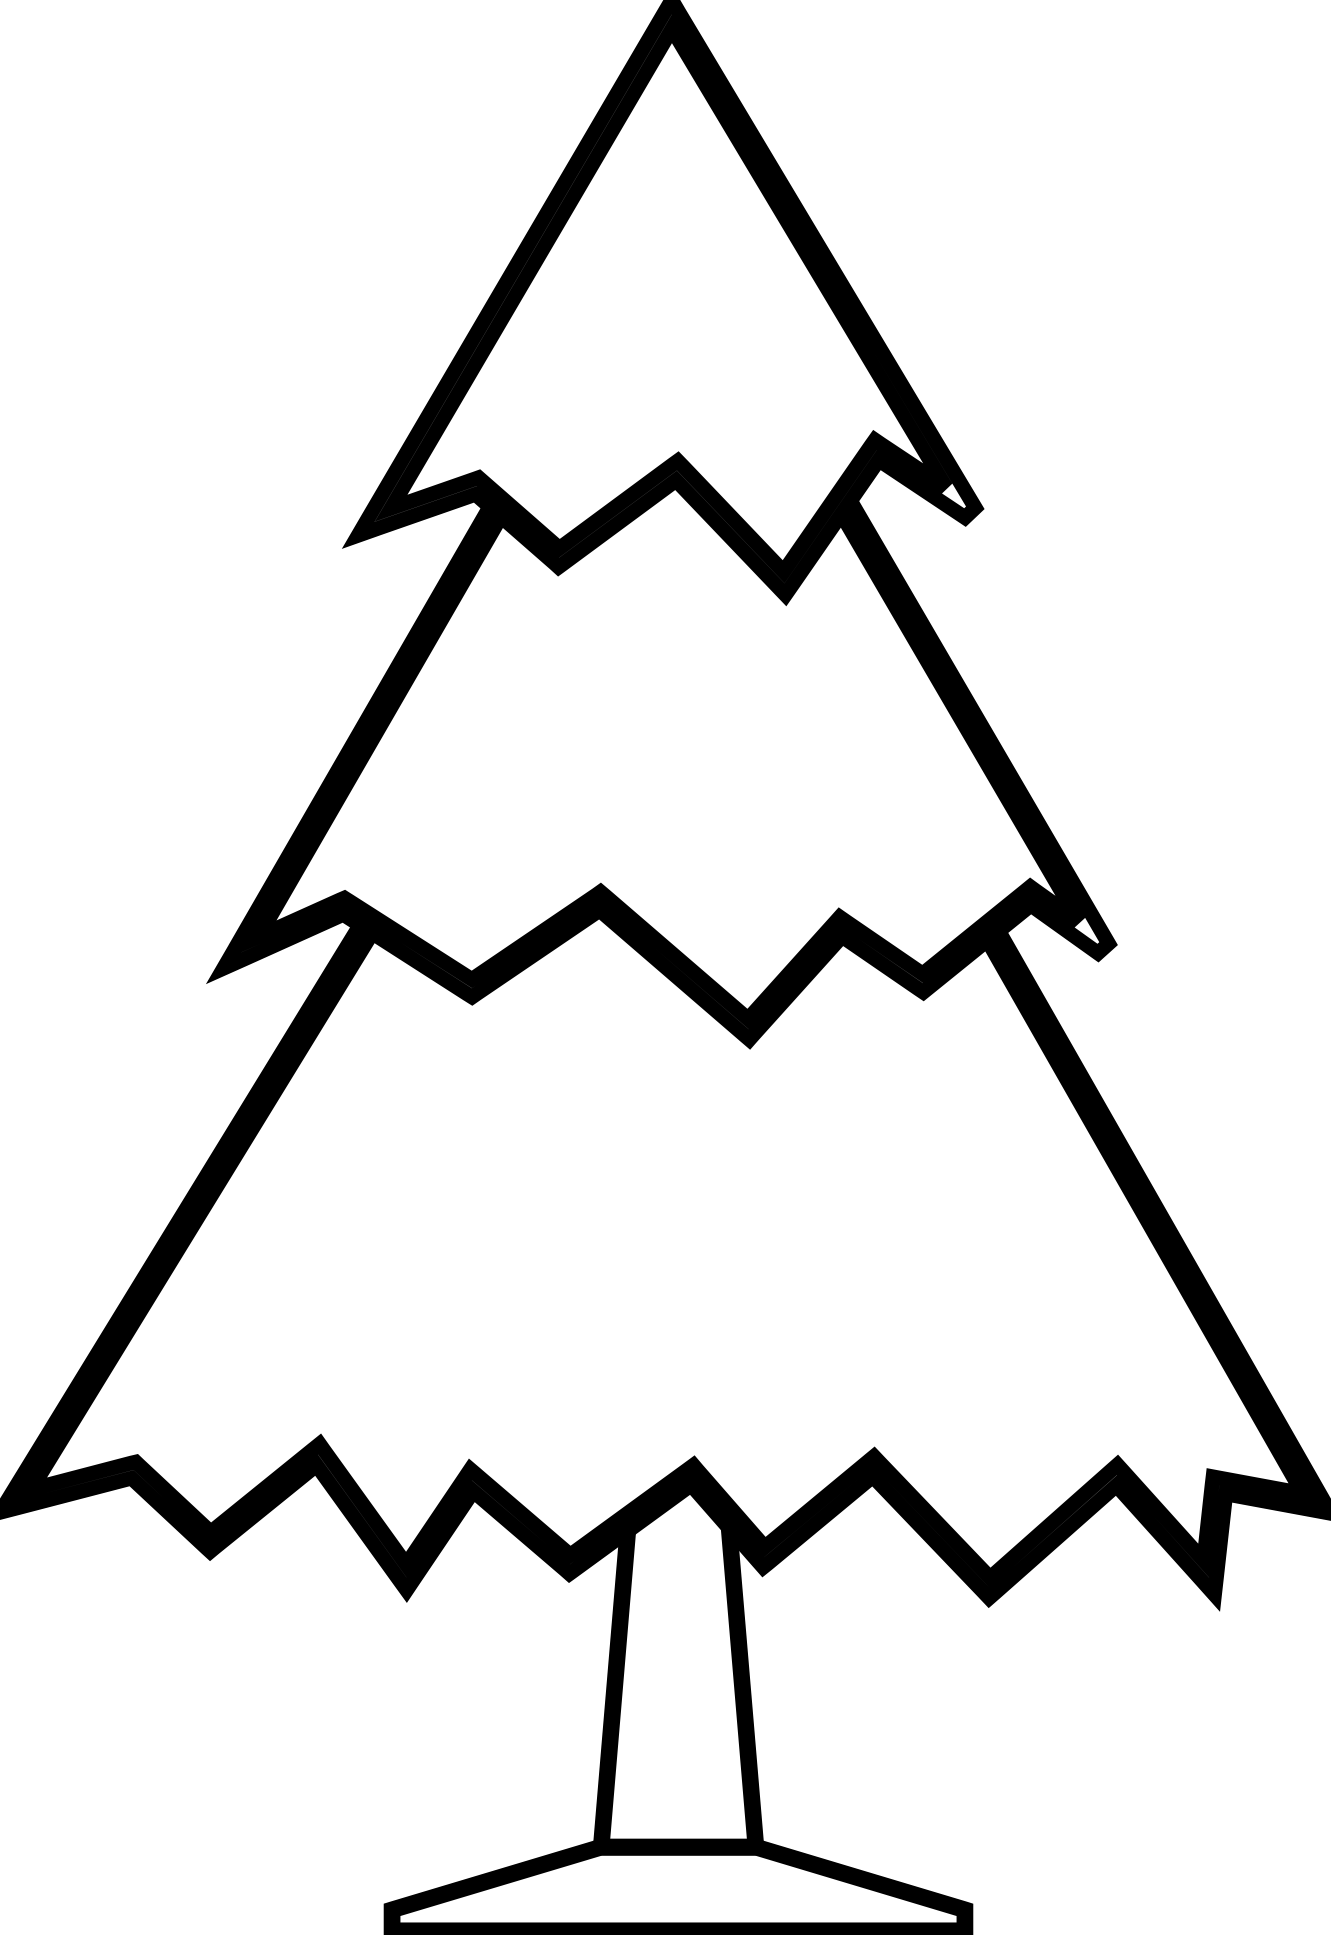 Crismas Tree Black And White Clipart Clipground